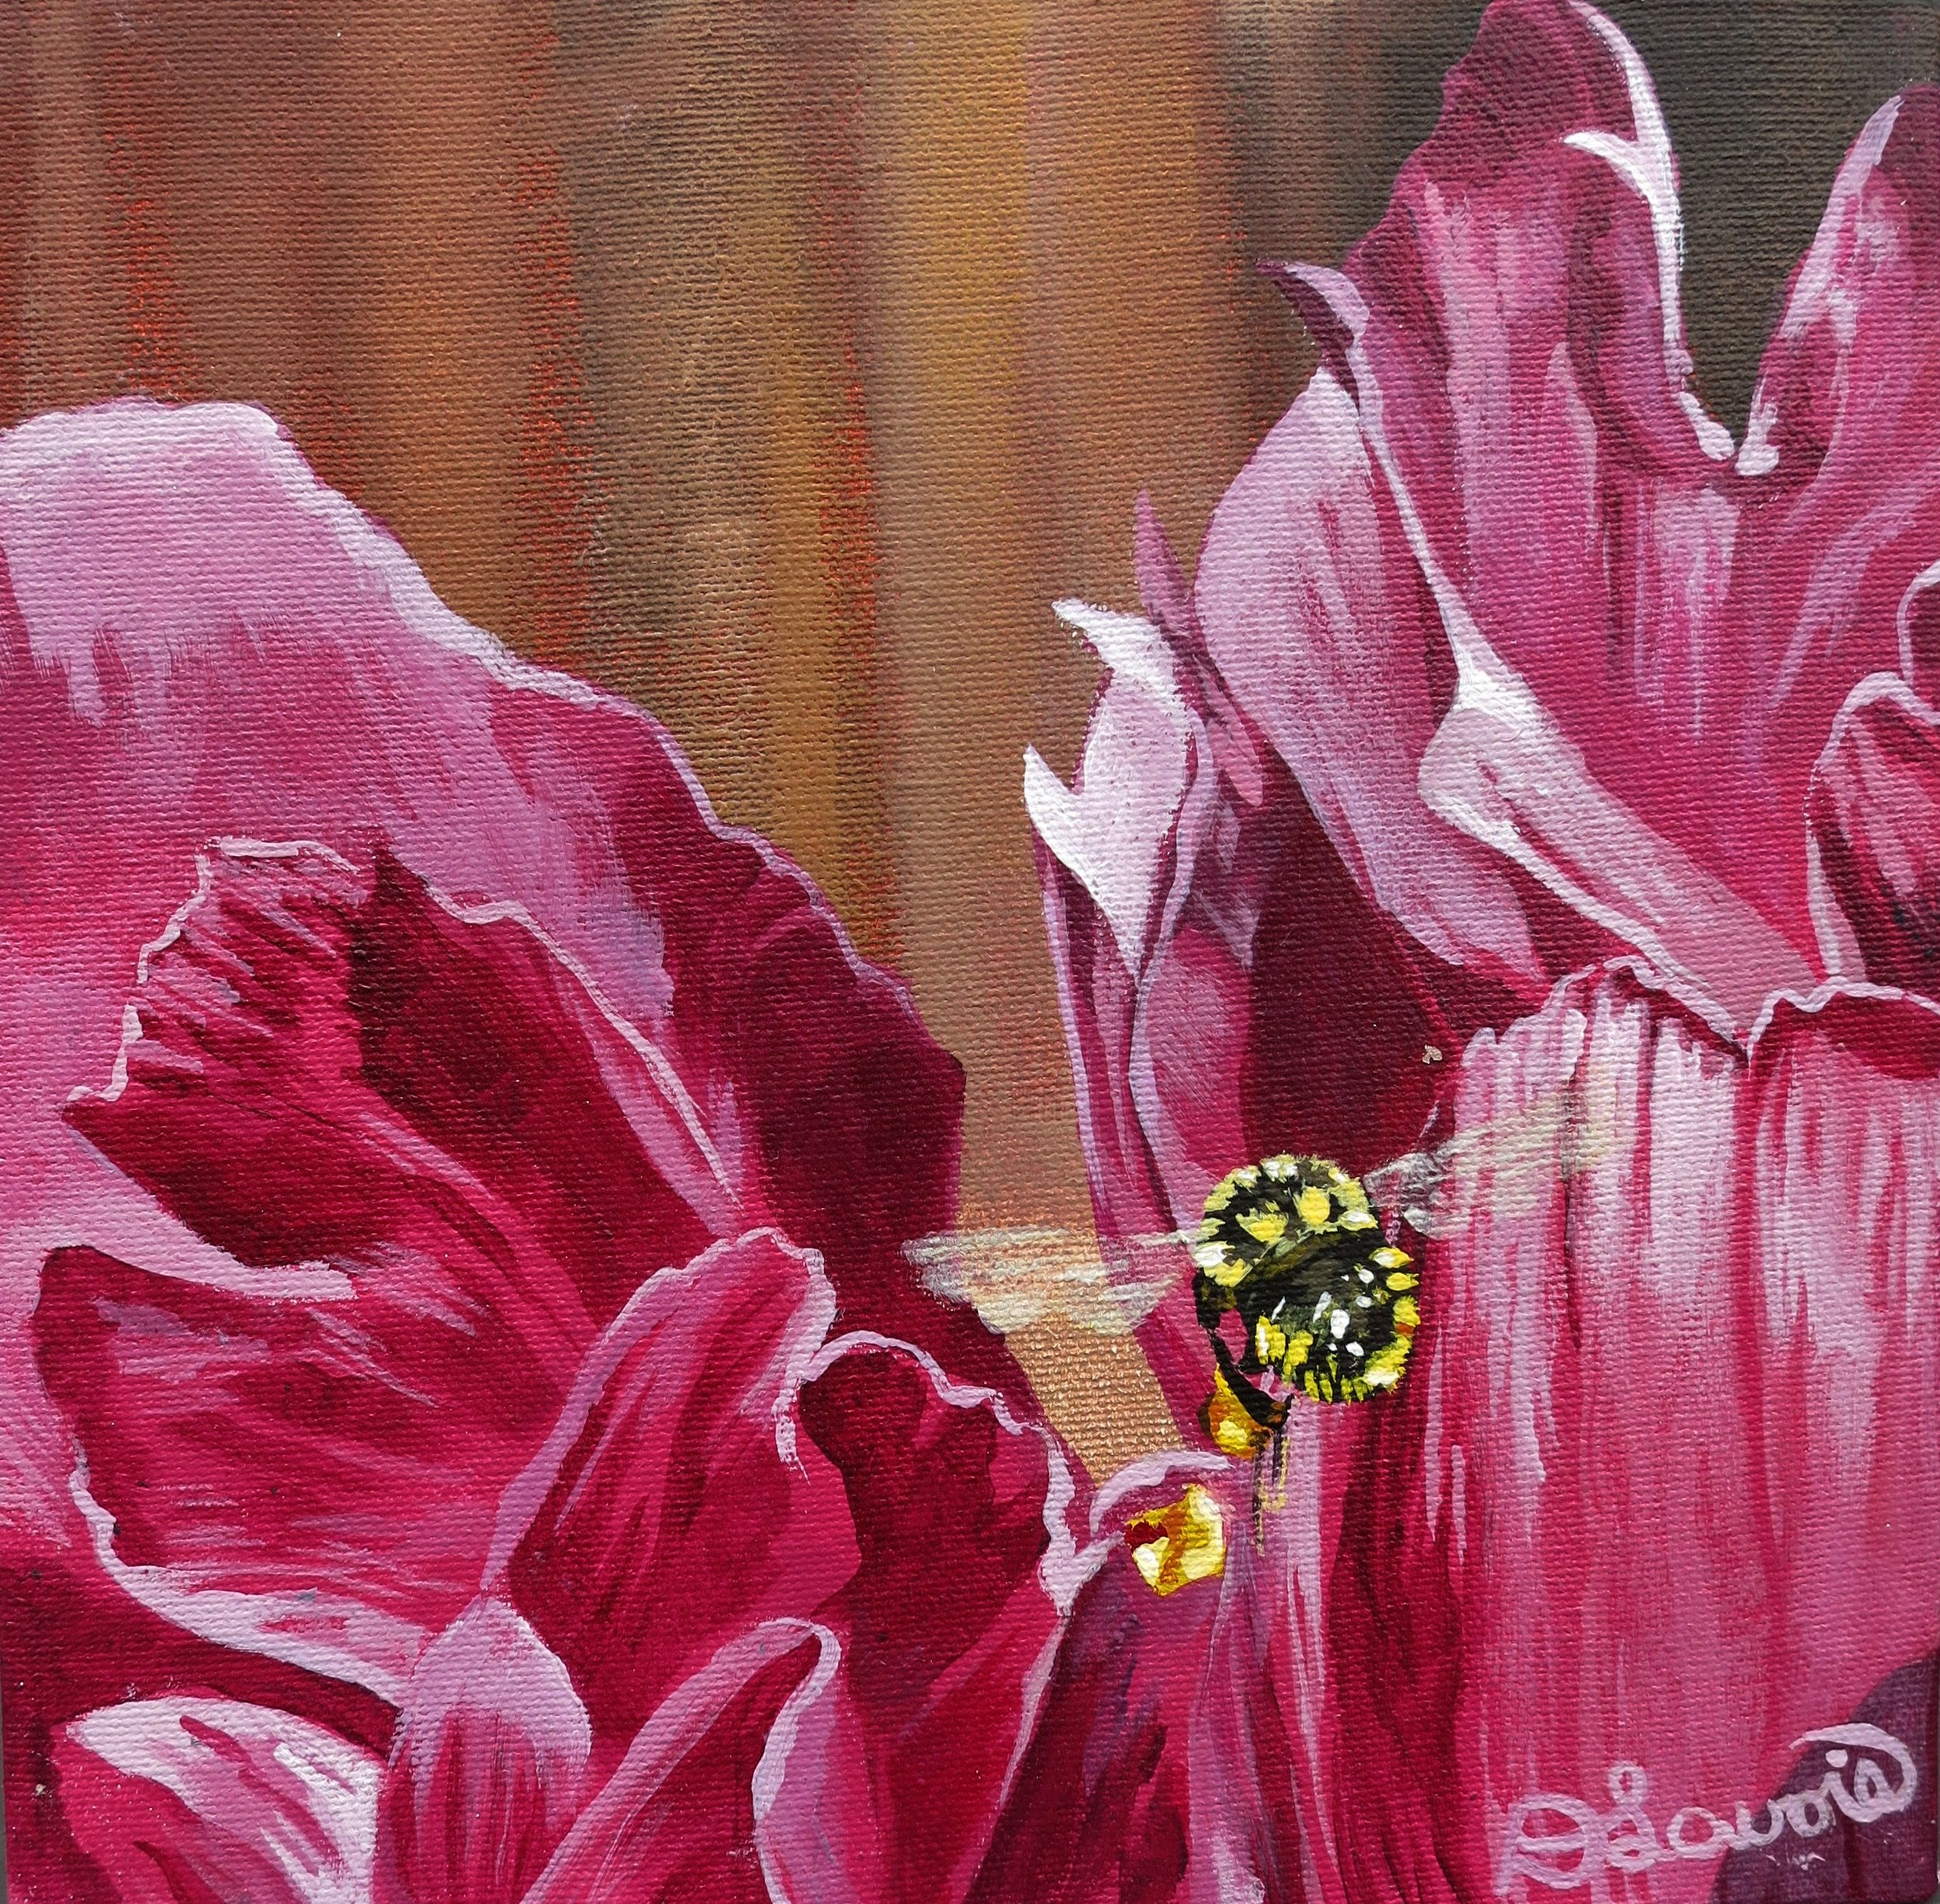 """I Bee-Lieve I can Fly          Acrylic on Canvas - 8"""" x 8""""     Both the original and limited edition prints are available.   As I observed the bees in my garden over the summer, I was fascinated how close they let me observe them. I was also quite amazed how many different types that visited my yard. This busy guy was zooming all over my peony collecting as much as he could."""